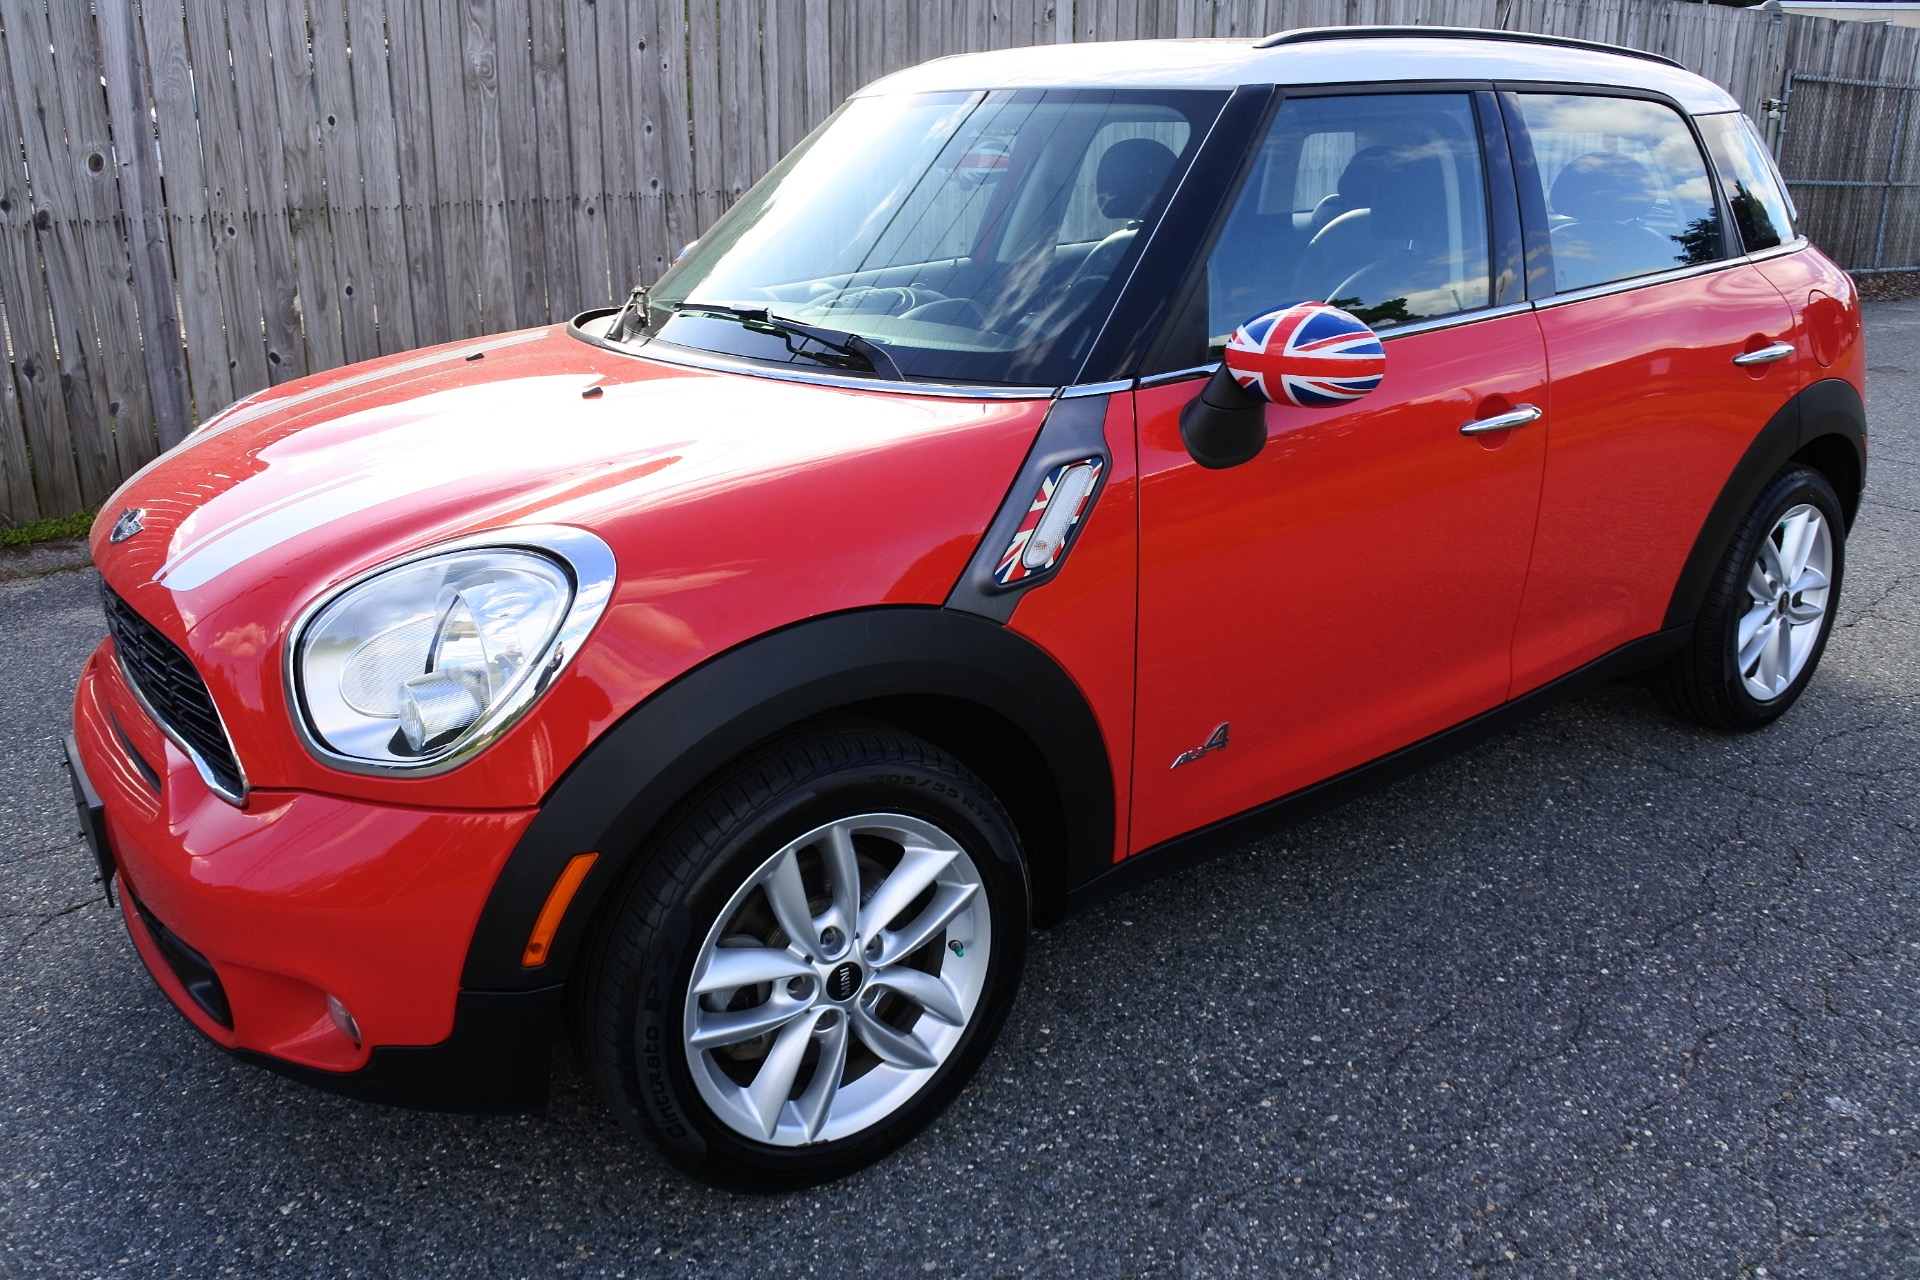 Used 2012 Mini Cooper Countryman AWD 4dr S ALL4 Used 2012 Mini Cooper Countryman AWD 4dr S ALL4 for sale  at Metro West Motorcars LLC in Shrewsbury MA 1